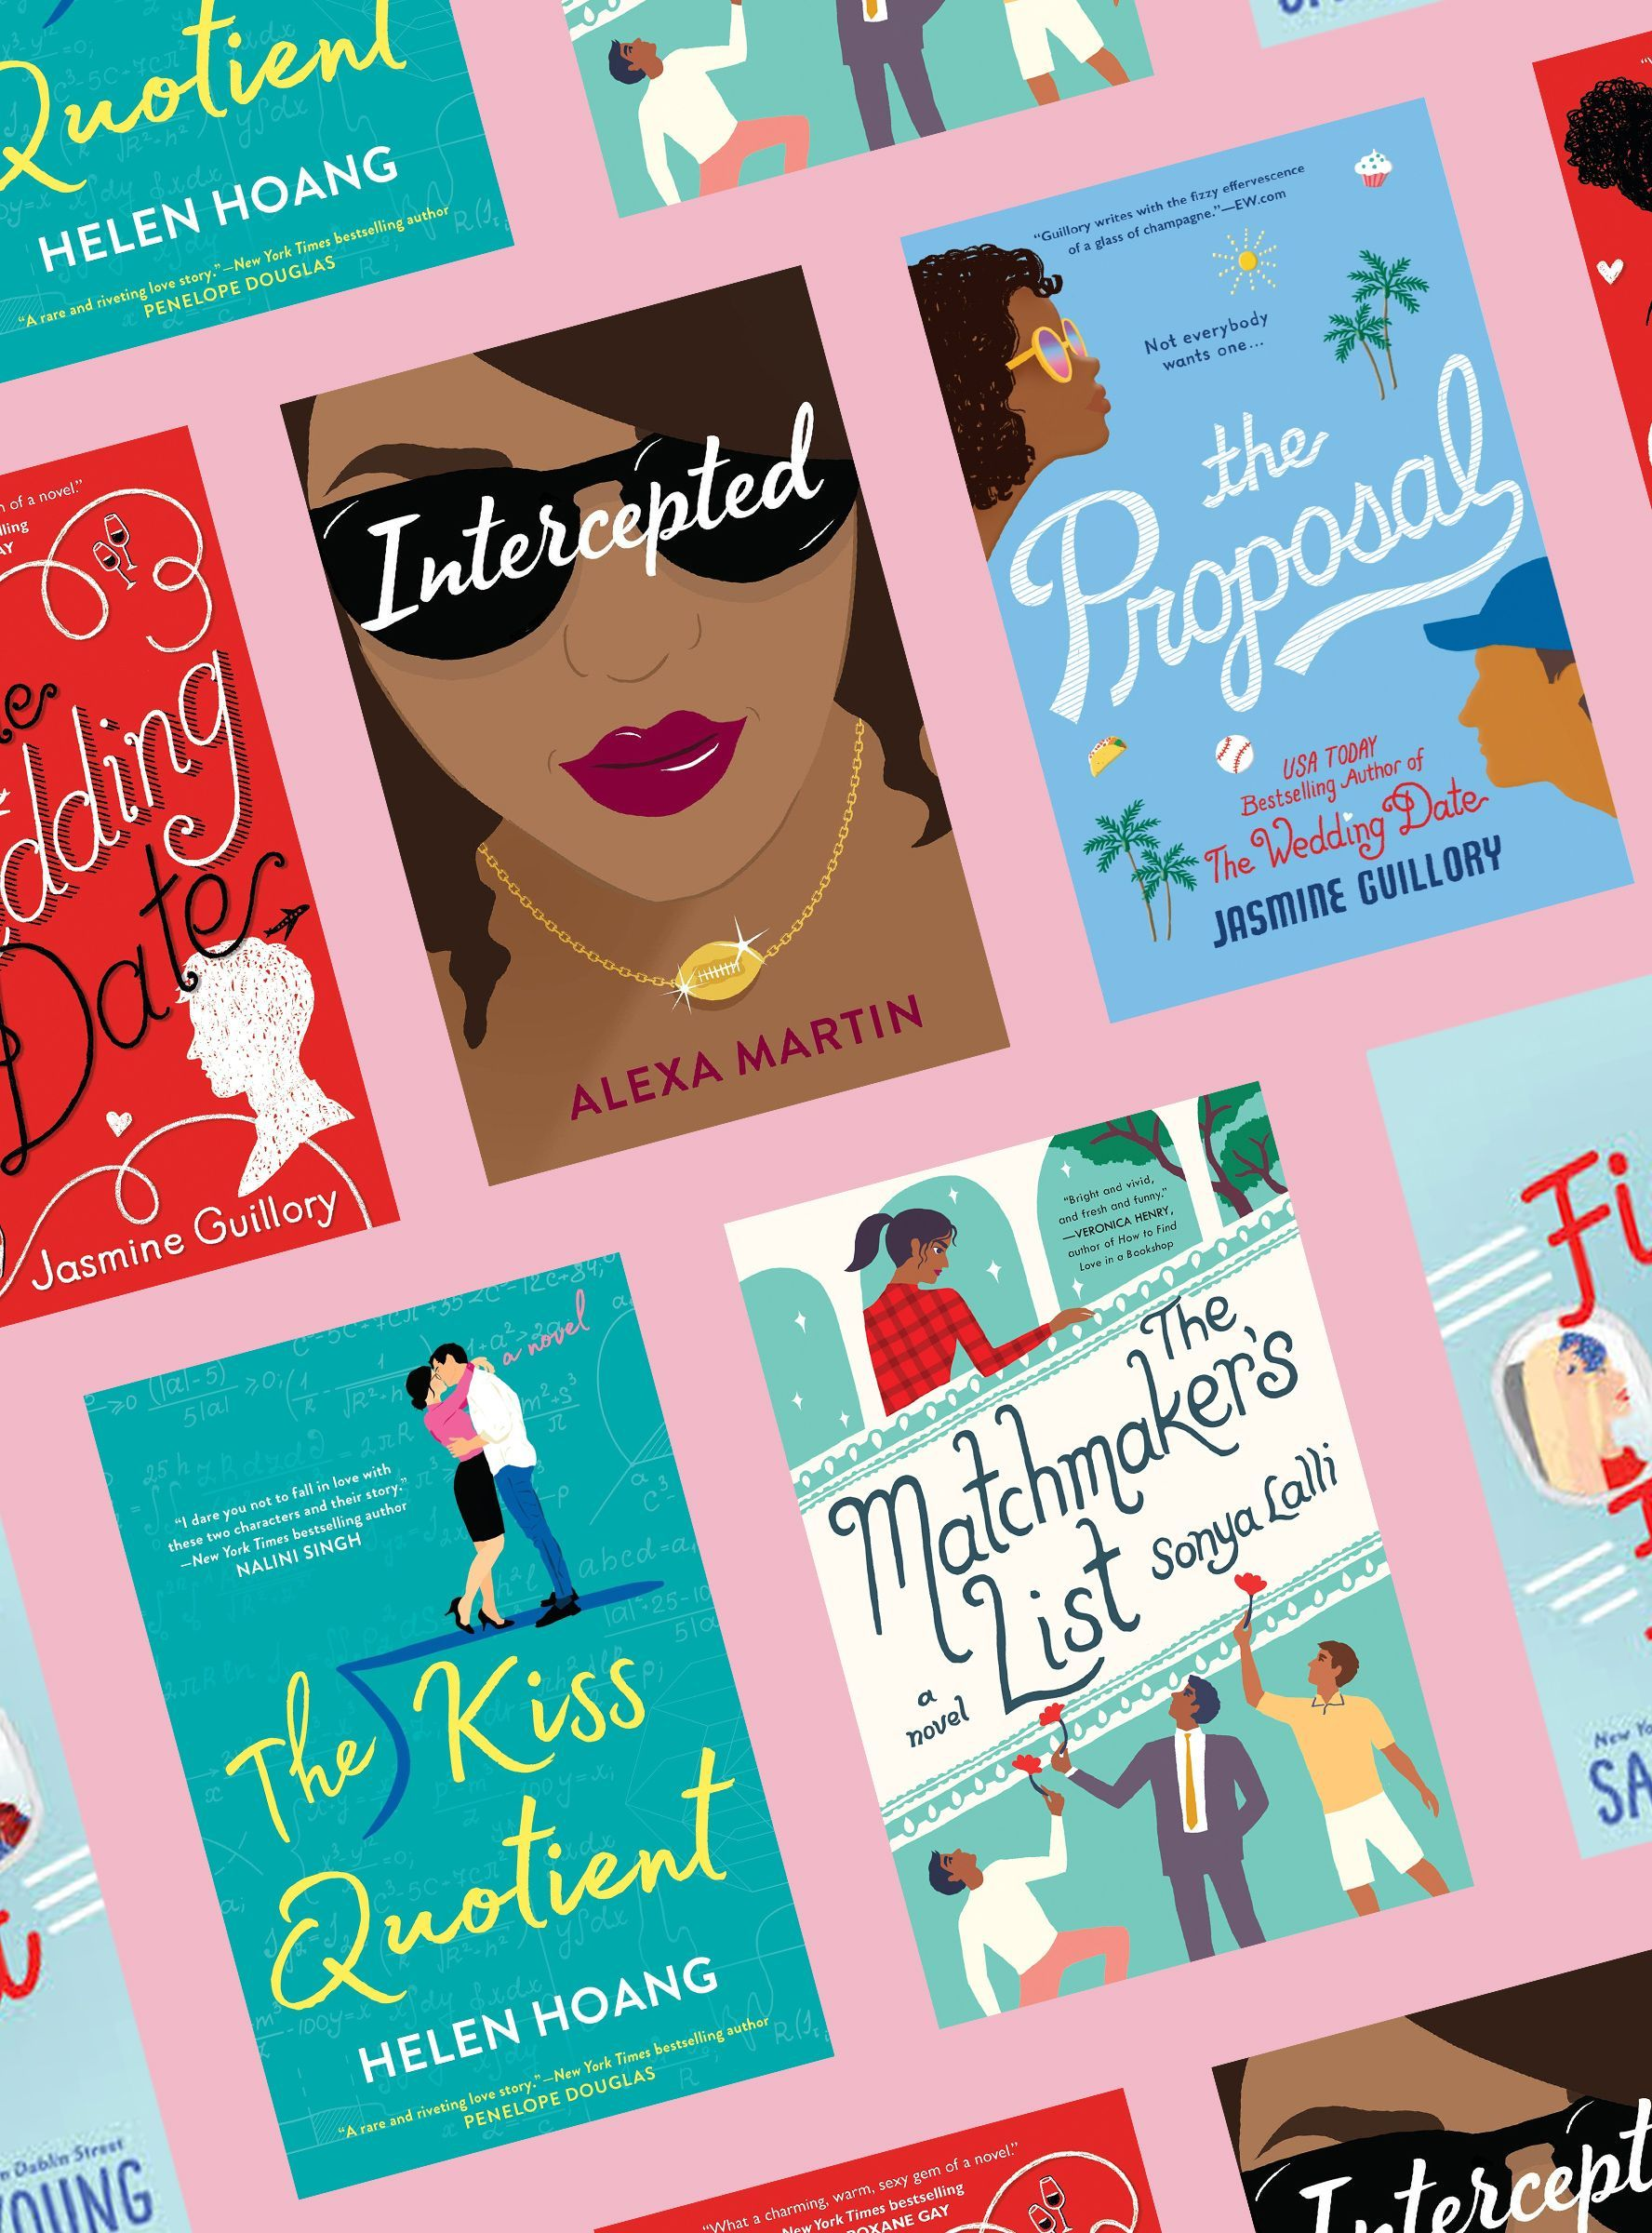 How These Instagrammable Book Covers Are Tricking People Into Reading Romance Romance Book Cover Design Romance Book Covers Contemporary Romance Books